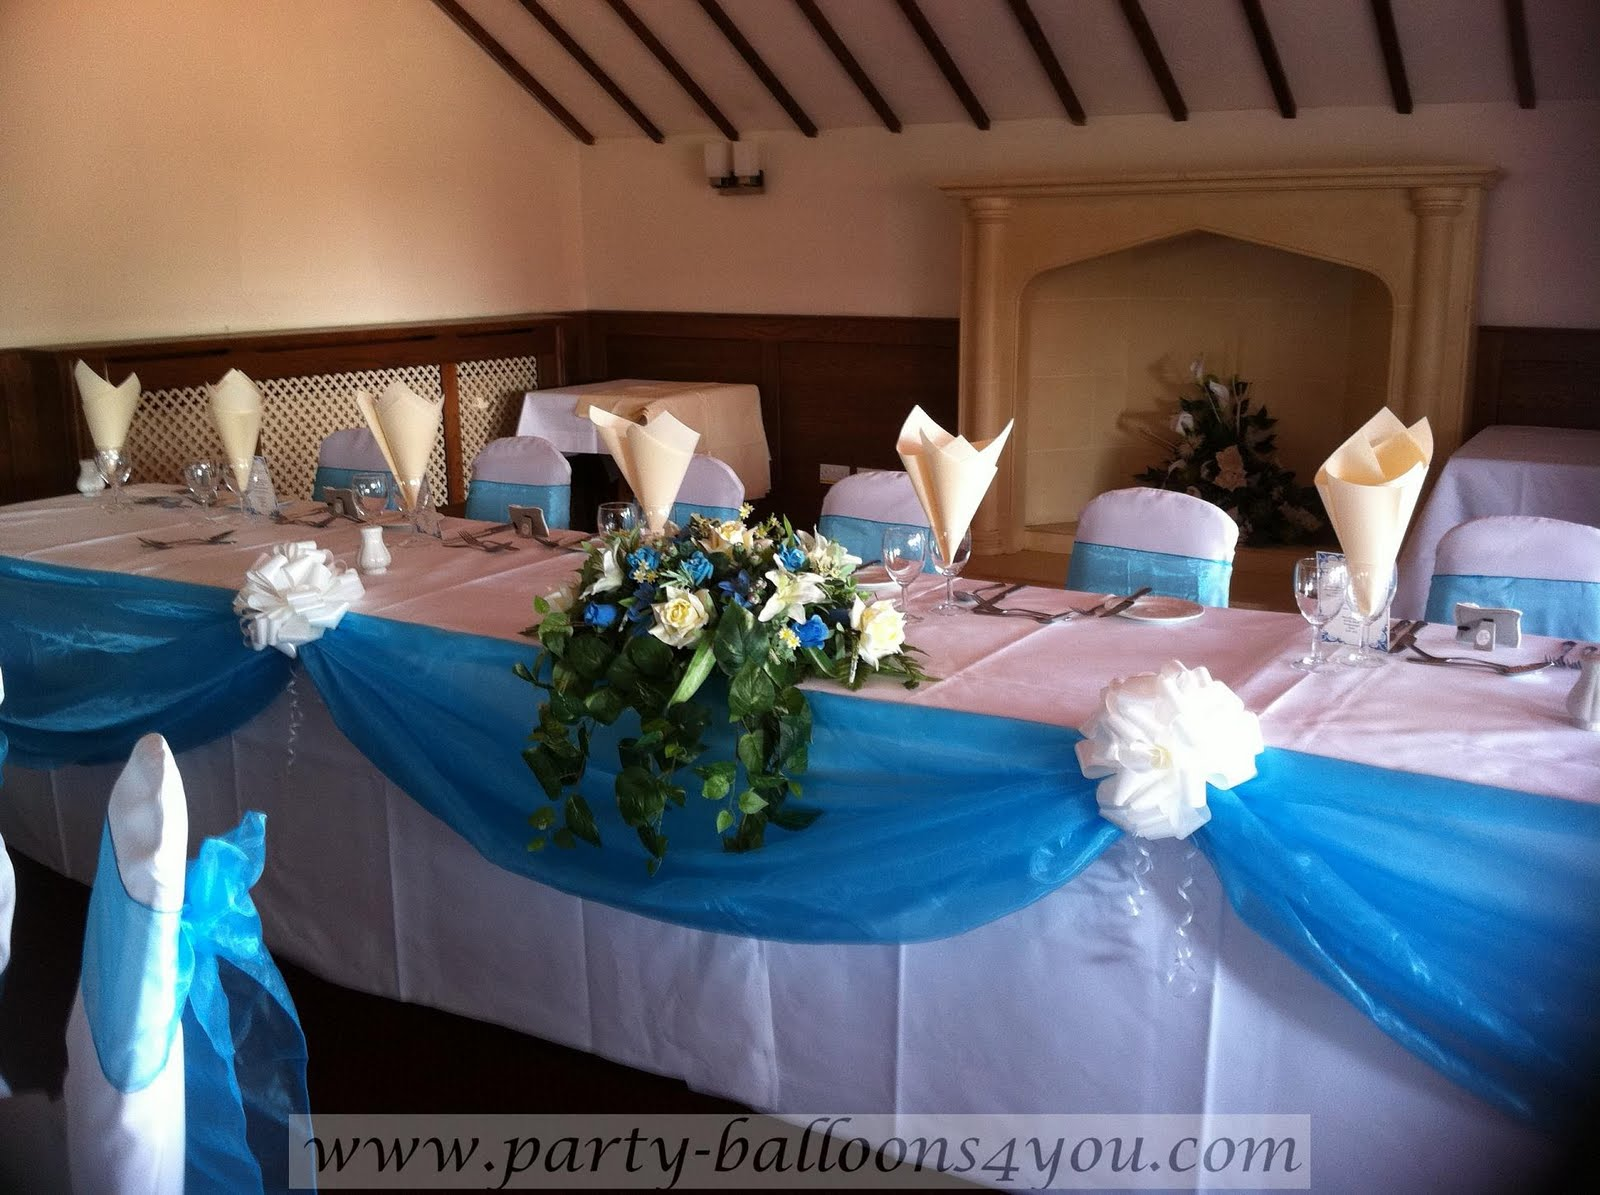 Chair Cover Hire And Setup Christmas Covers Dollar Tree Party Balloons 4 You: Rachel Shaun Wedding On The 2nd July 2011 At Farrington Golf Club ...